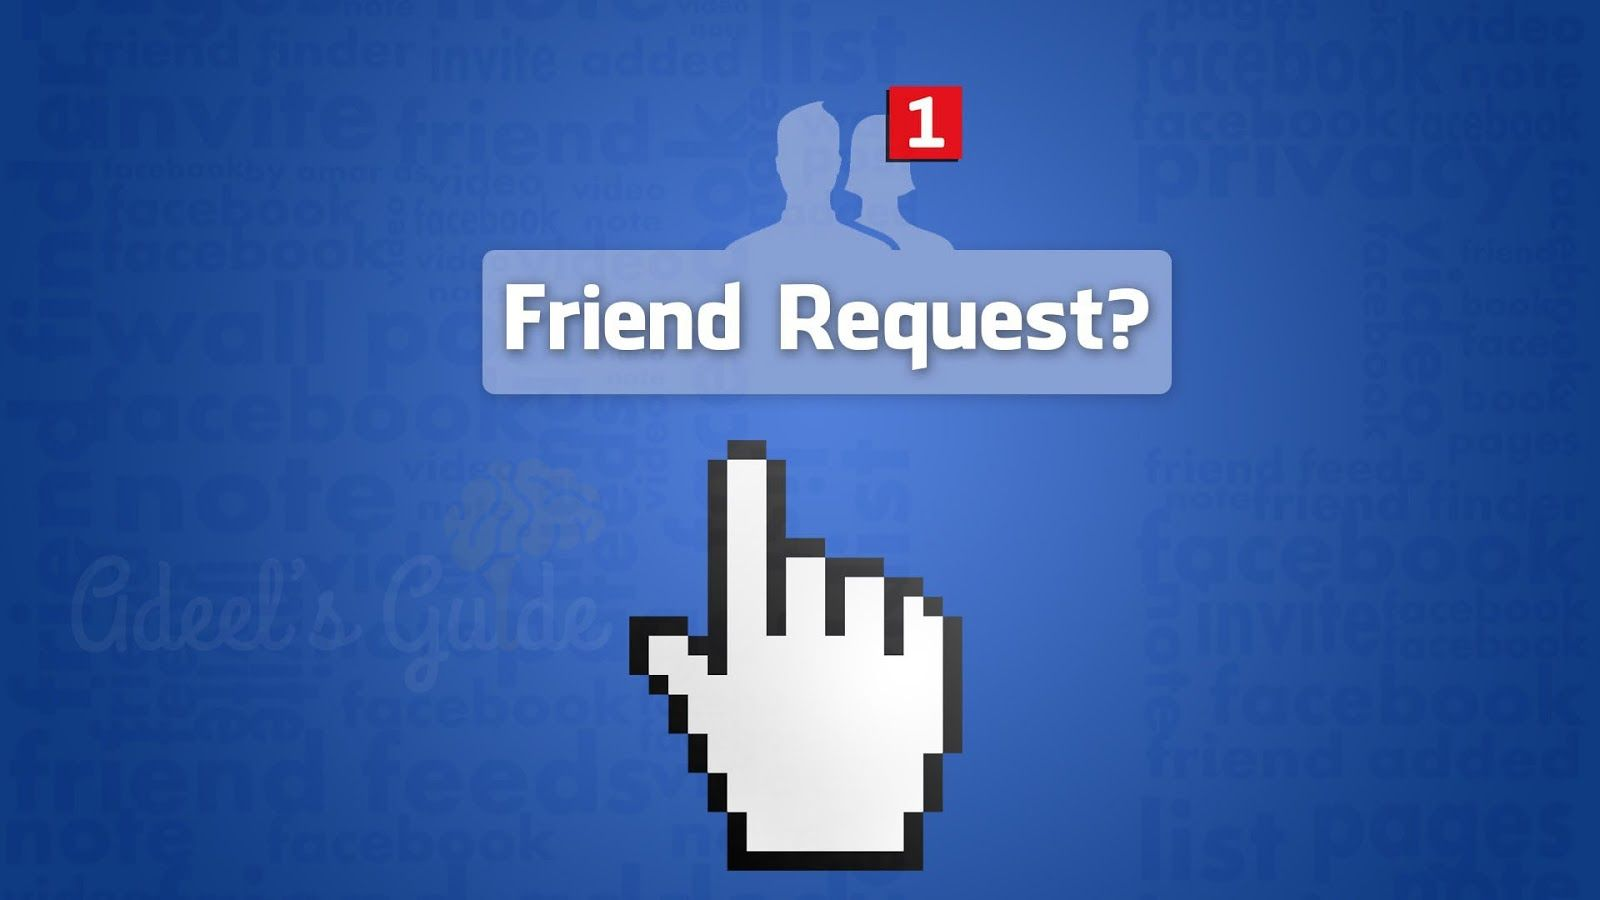 With one click you accept all the way to accept all friend requests